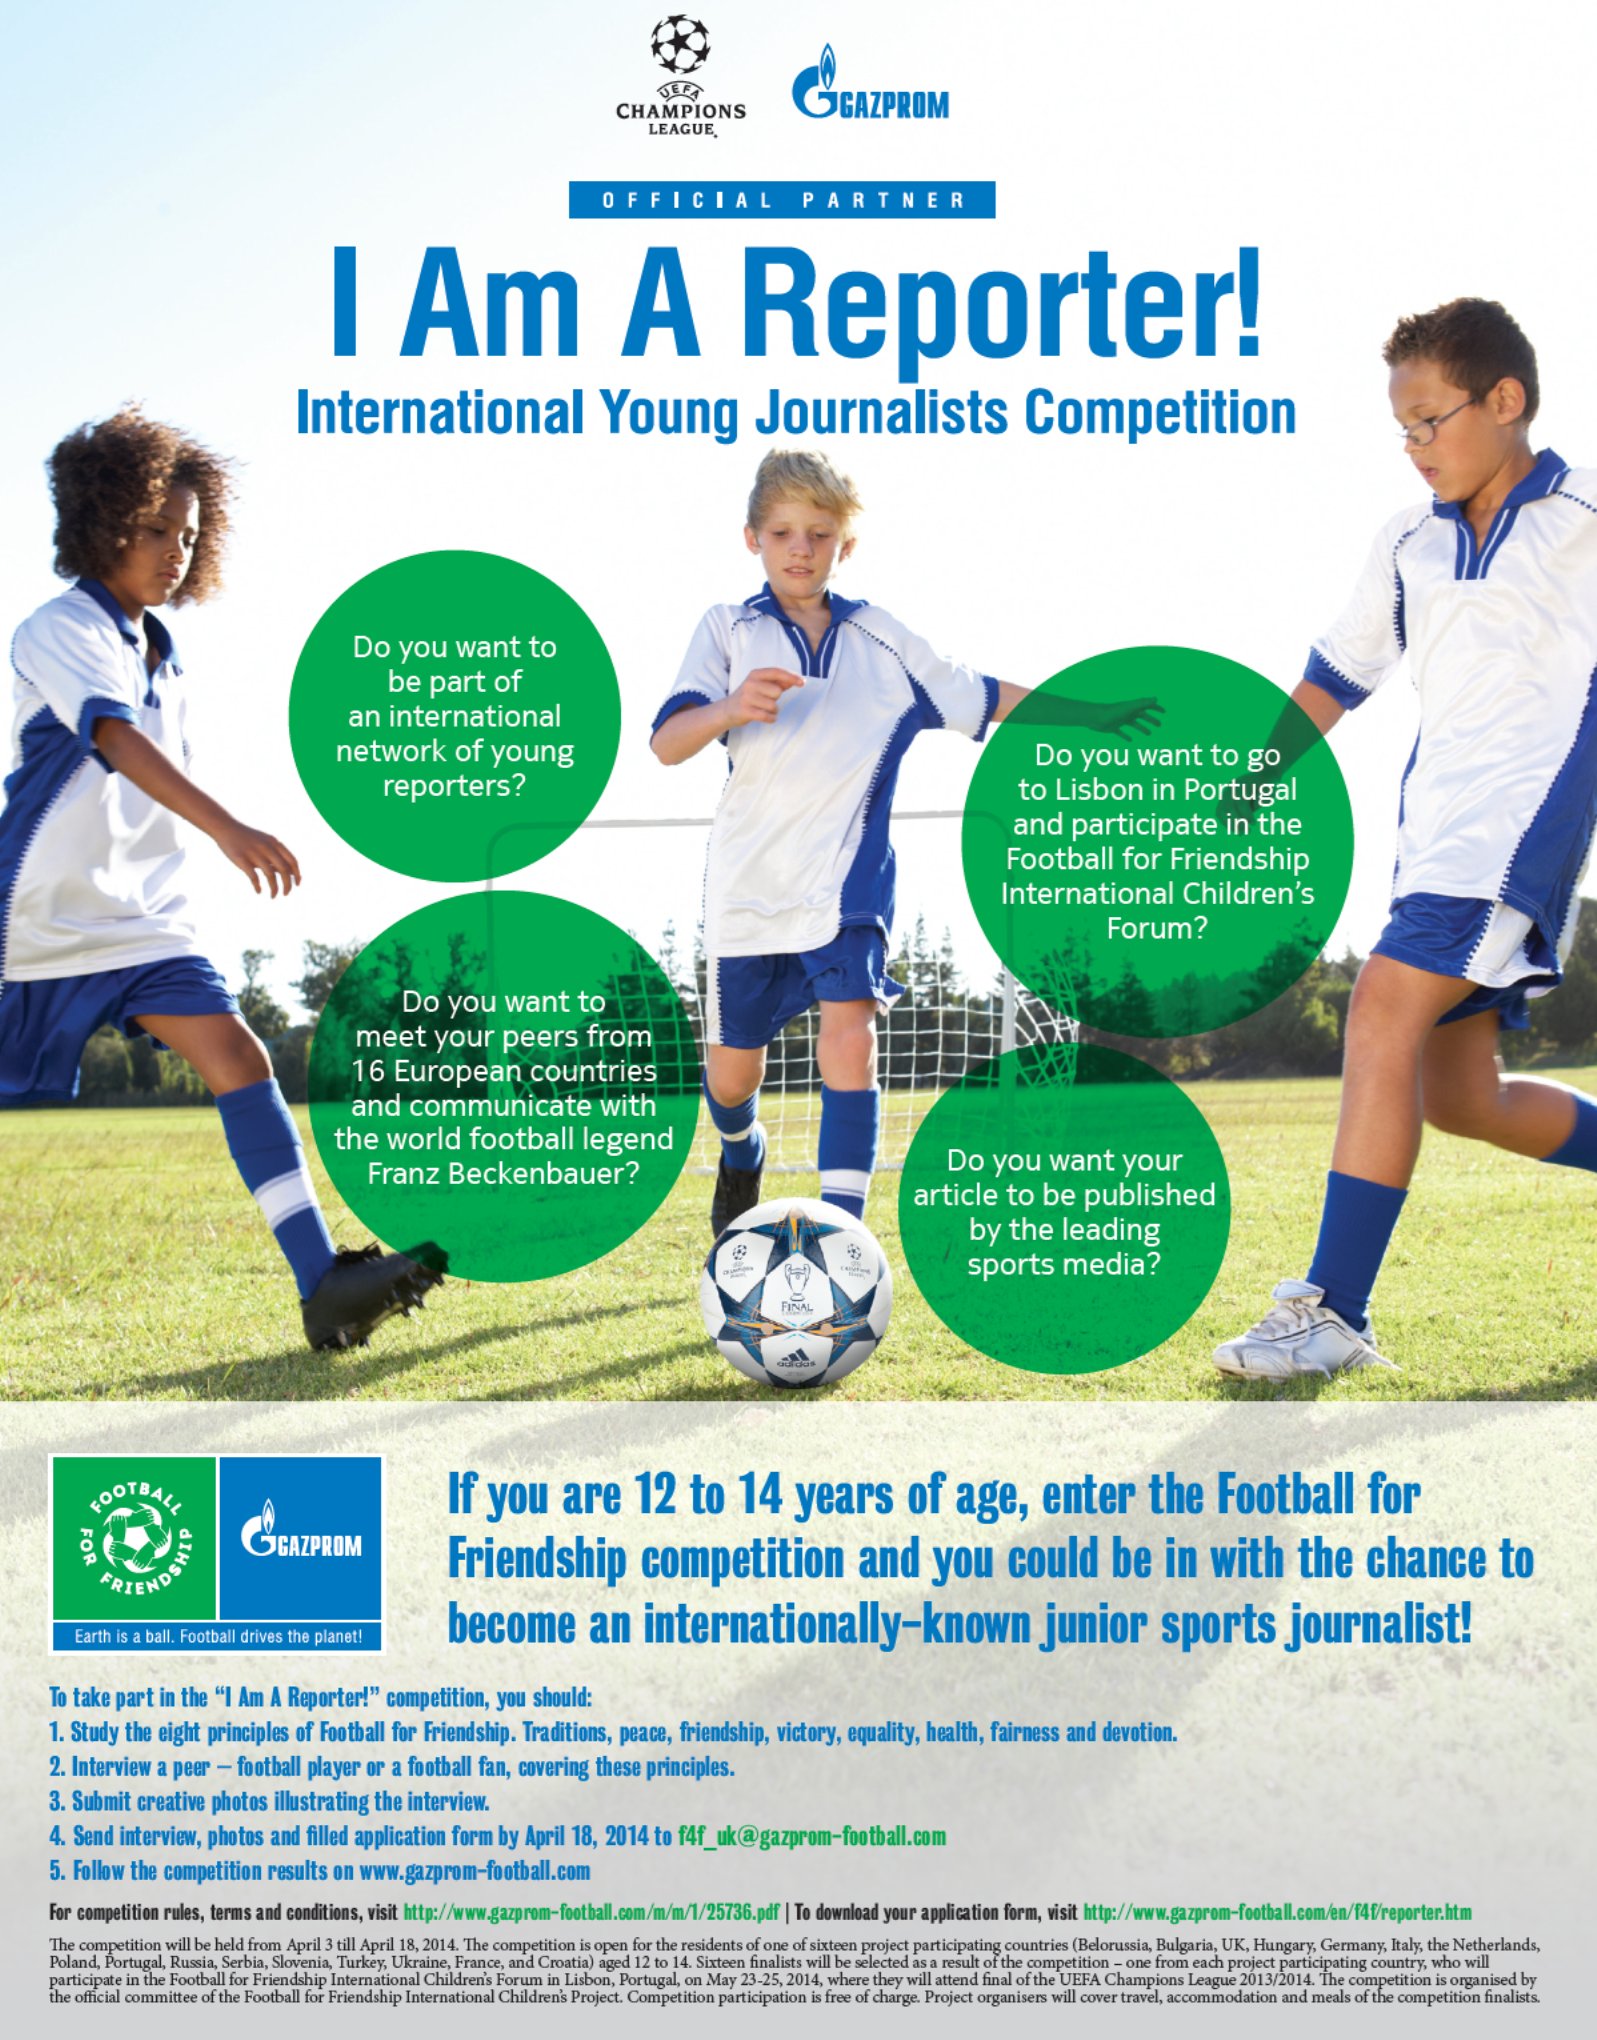 Hurry Up! You have very limited time to live your dream of becoming an internationally-known junior sports journalist!